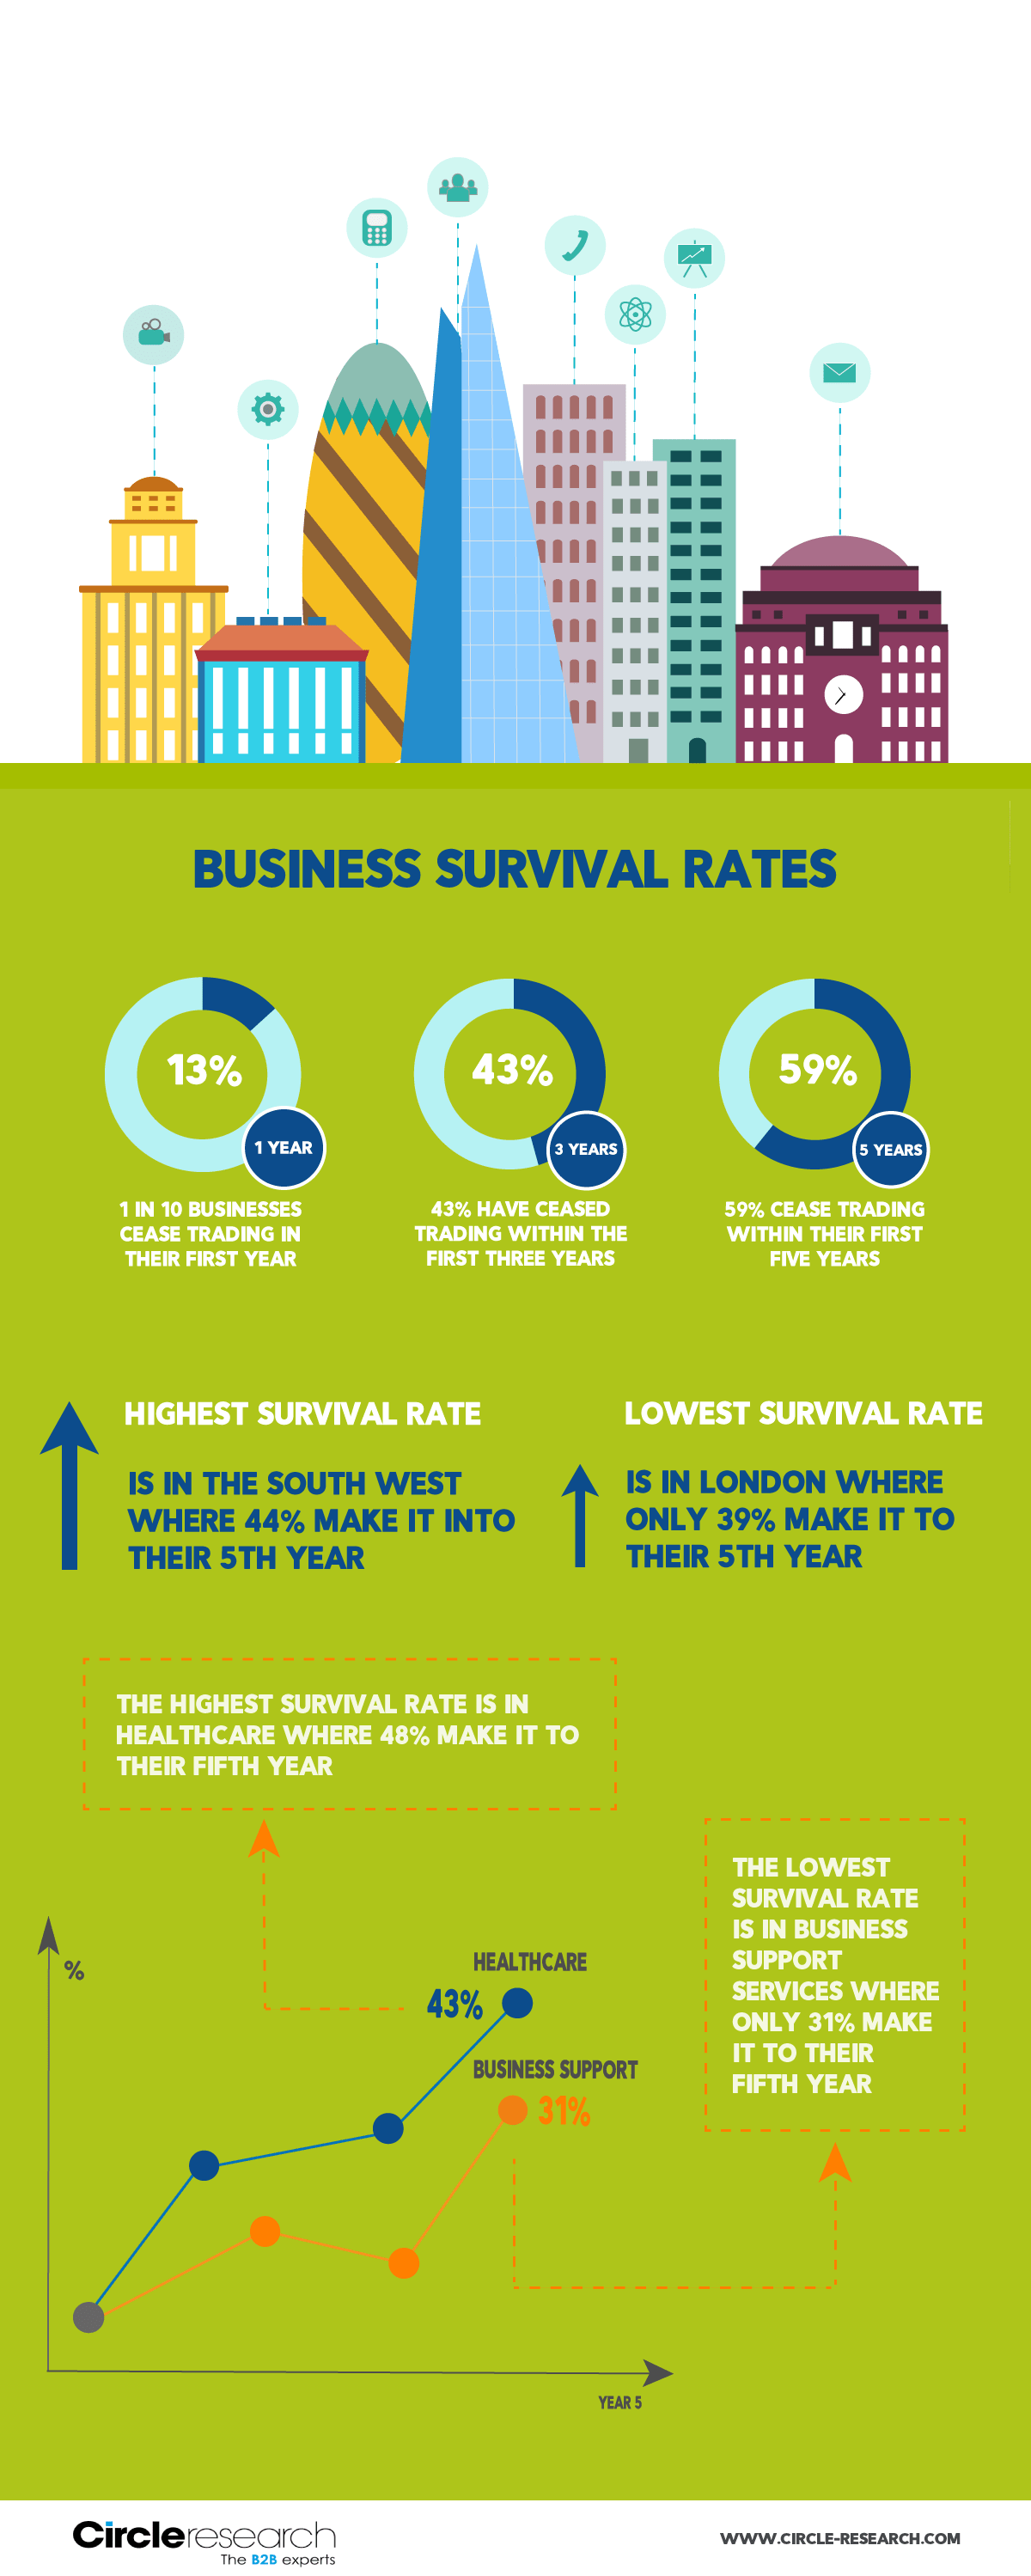 Business survival rates in UK - infographic